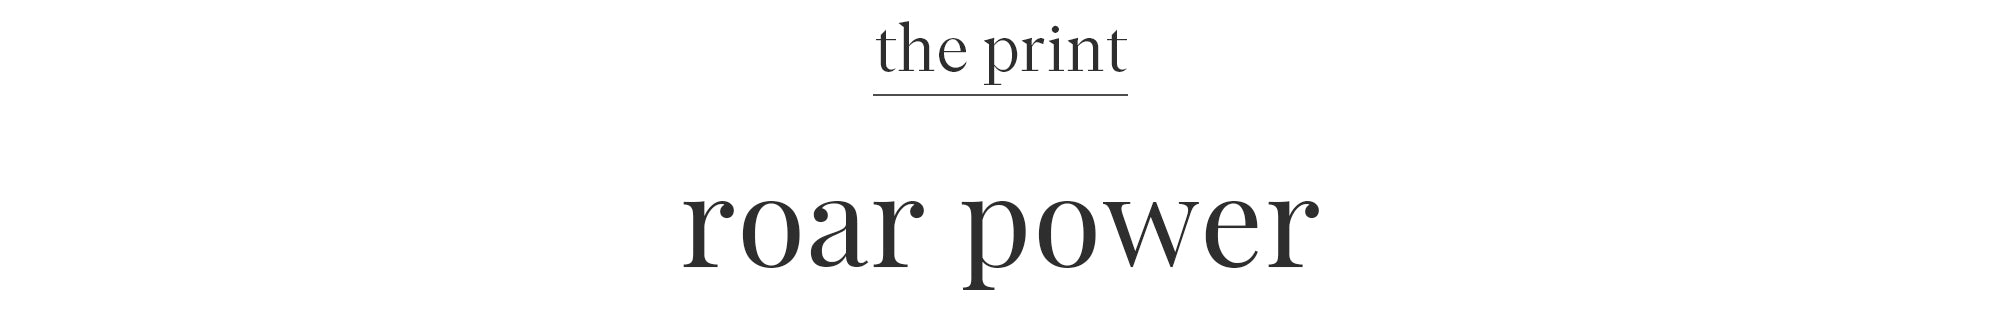 THE PRINT: ROAR POWER